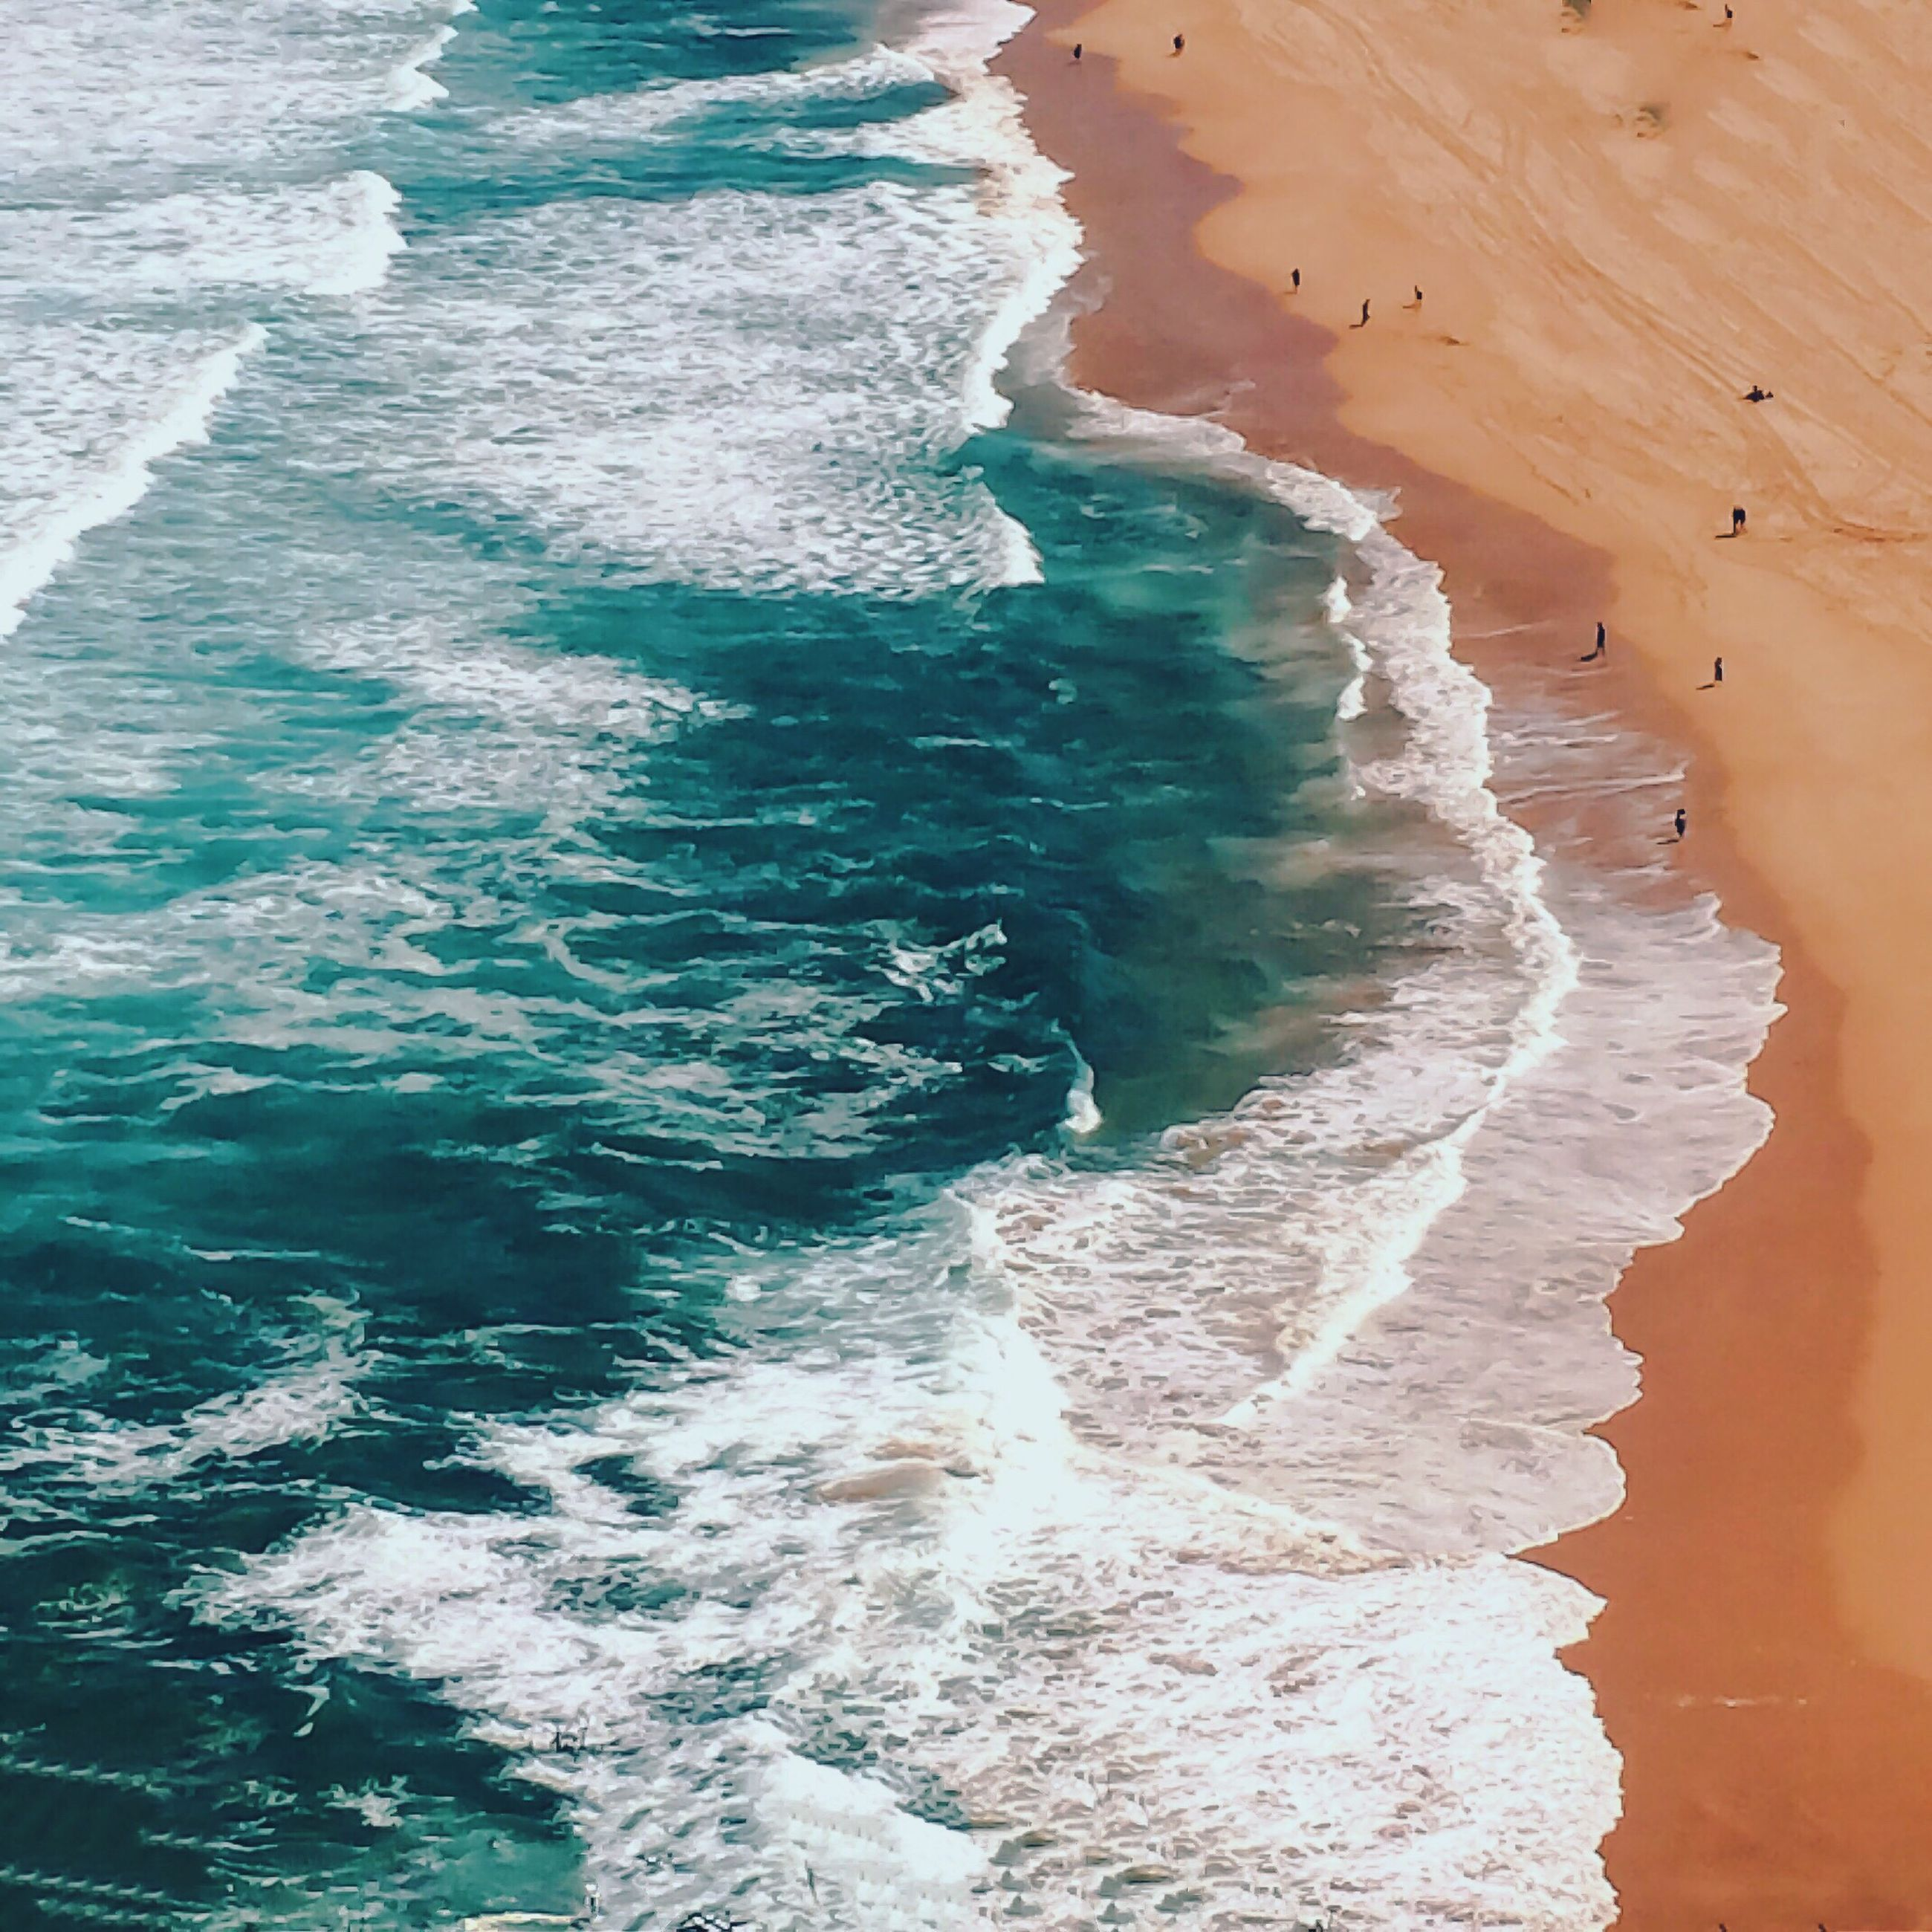 sea, beach, water, wave, surf, shore, beauty in nature, nature, scenics, coastline, sand, tranquil scene, tourism, tranquility, day, non-urban scene, outdoors, remote, cliff, power in nature, vacations, tide, majestic, splashing, no people, ocean